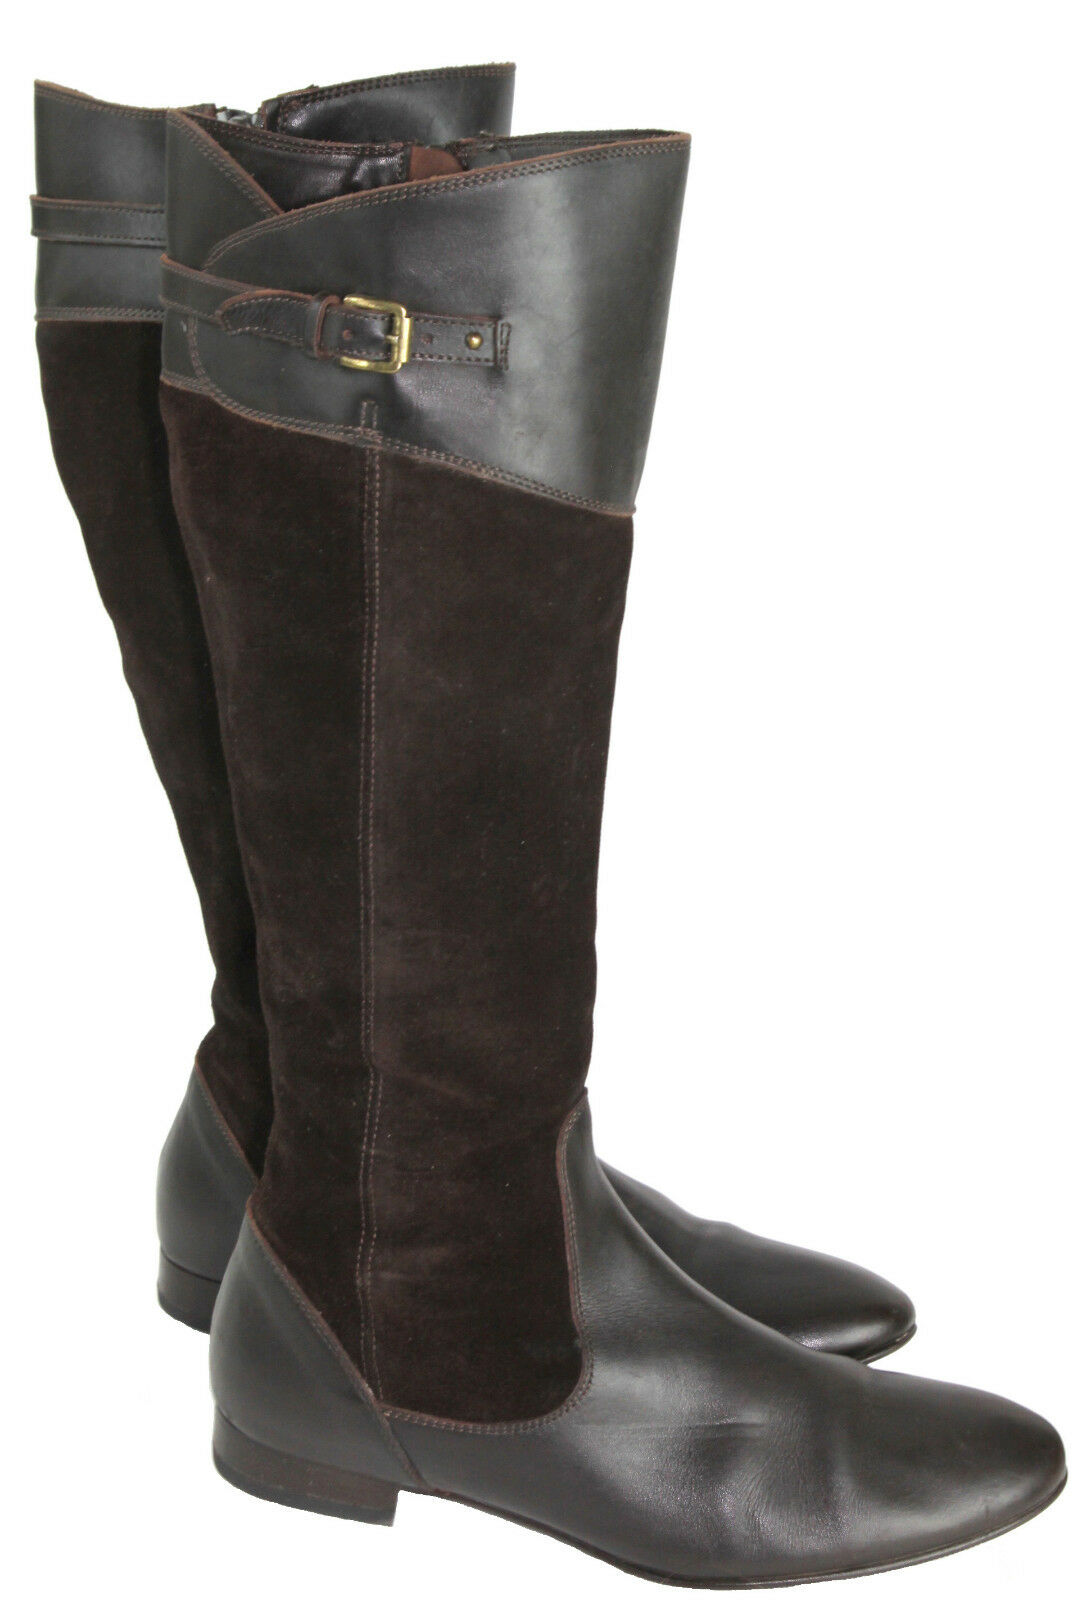 J.Crew Brown Leather and Suede Buckle Riding Boots, Made in  Size 7.5M